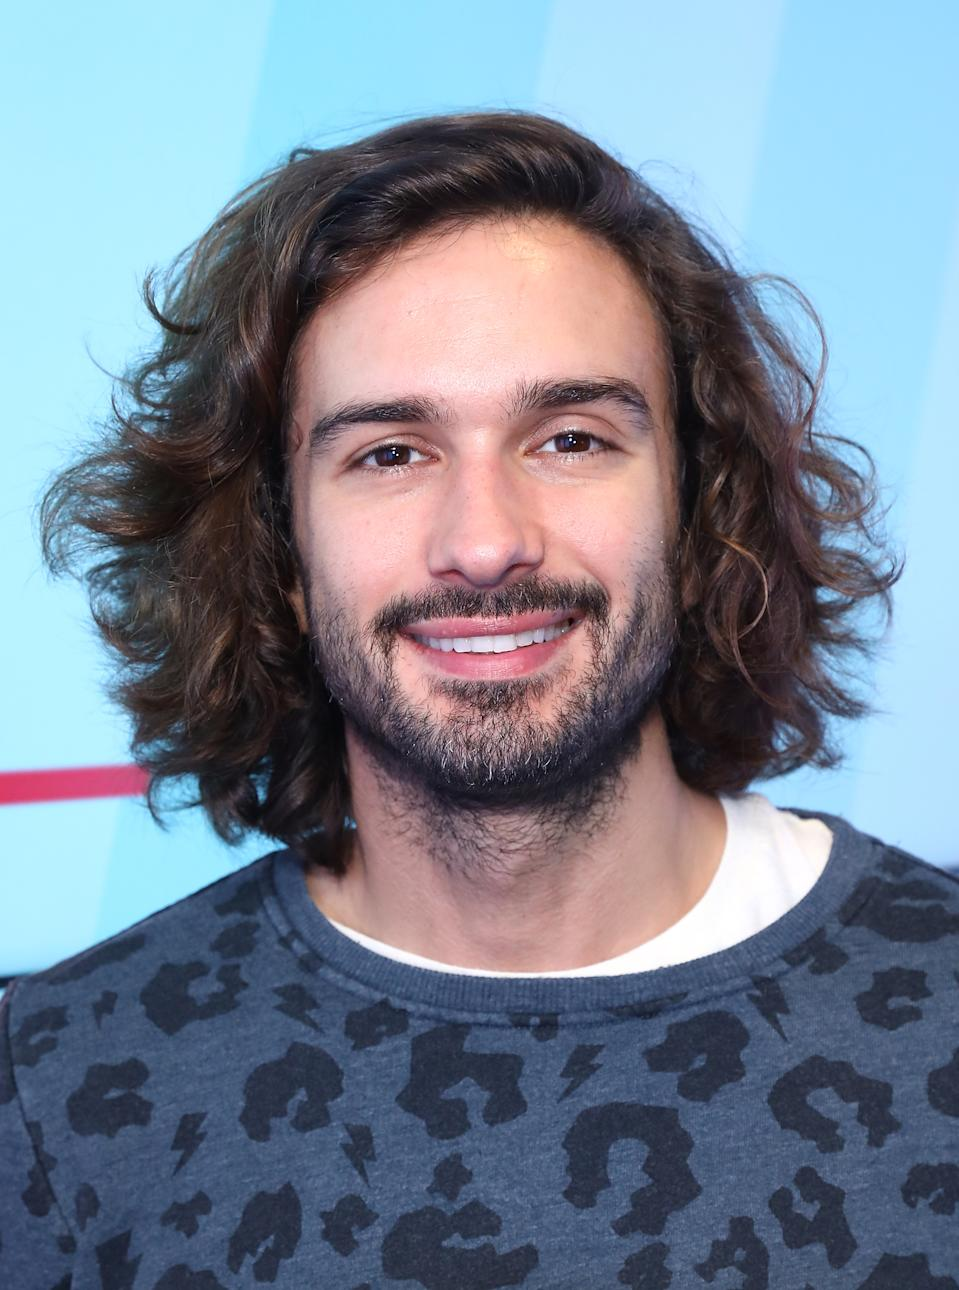 LONDON, ENGLAND - JANUARY 11: Joe Wicks aka 'The Body Coach' visits Heat Radio on January 11, 2019 in London, England. (Photo by Tim P. Whitby/Tim P. Whitby/Getty Images)